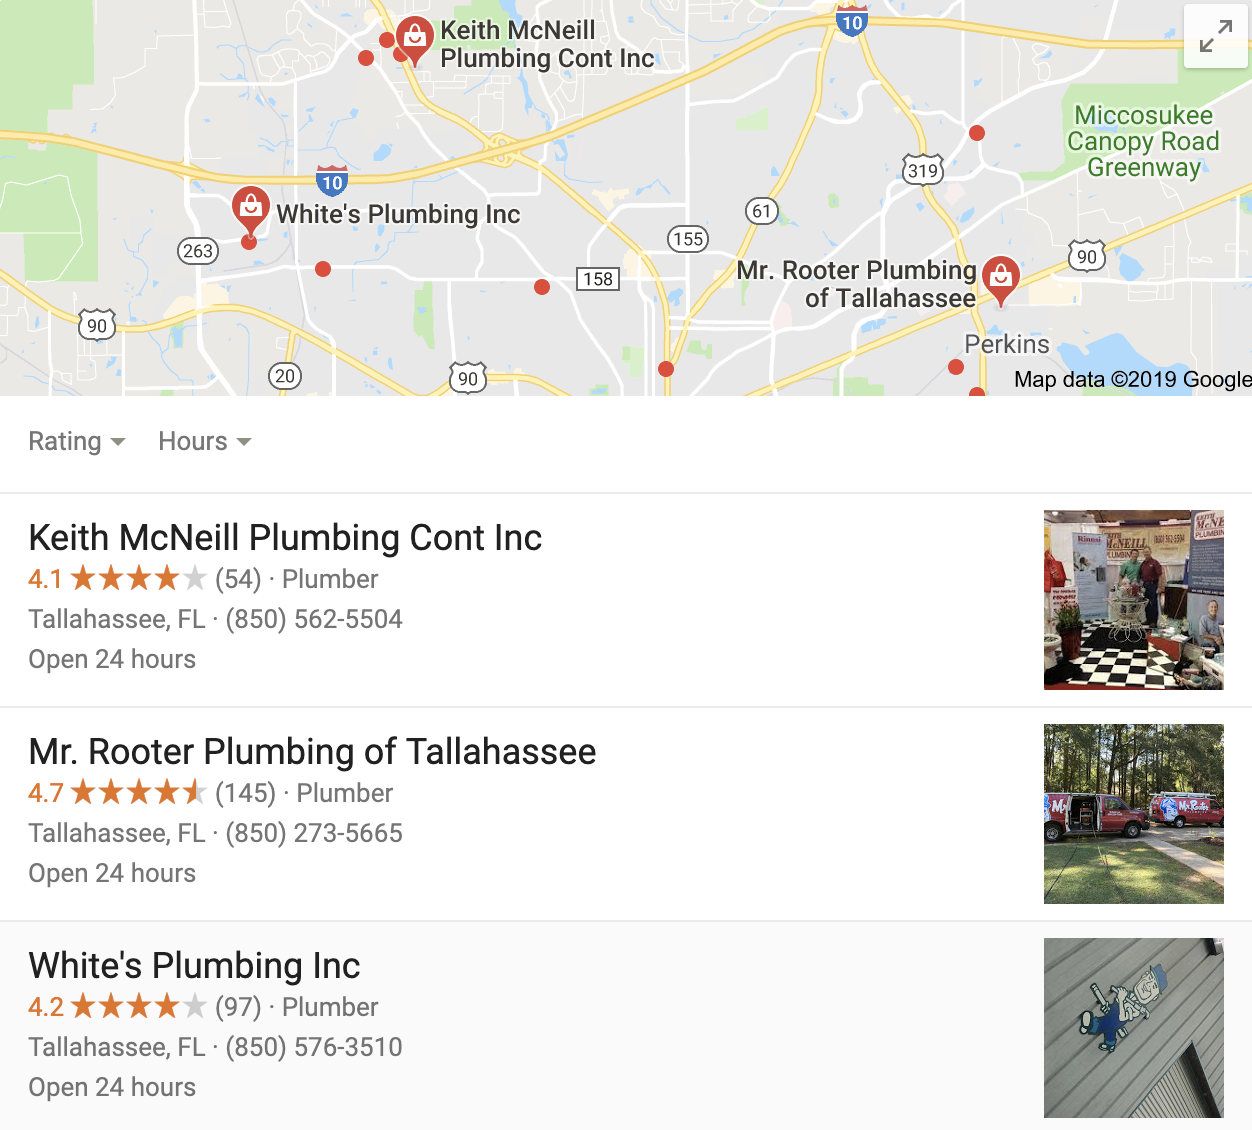 How To Get More Leads For Your Plumbing Business | Housecall Pro